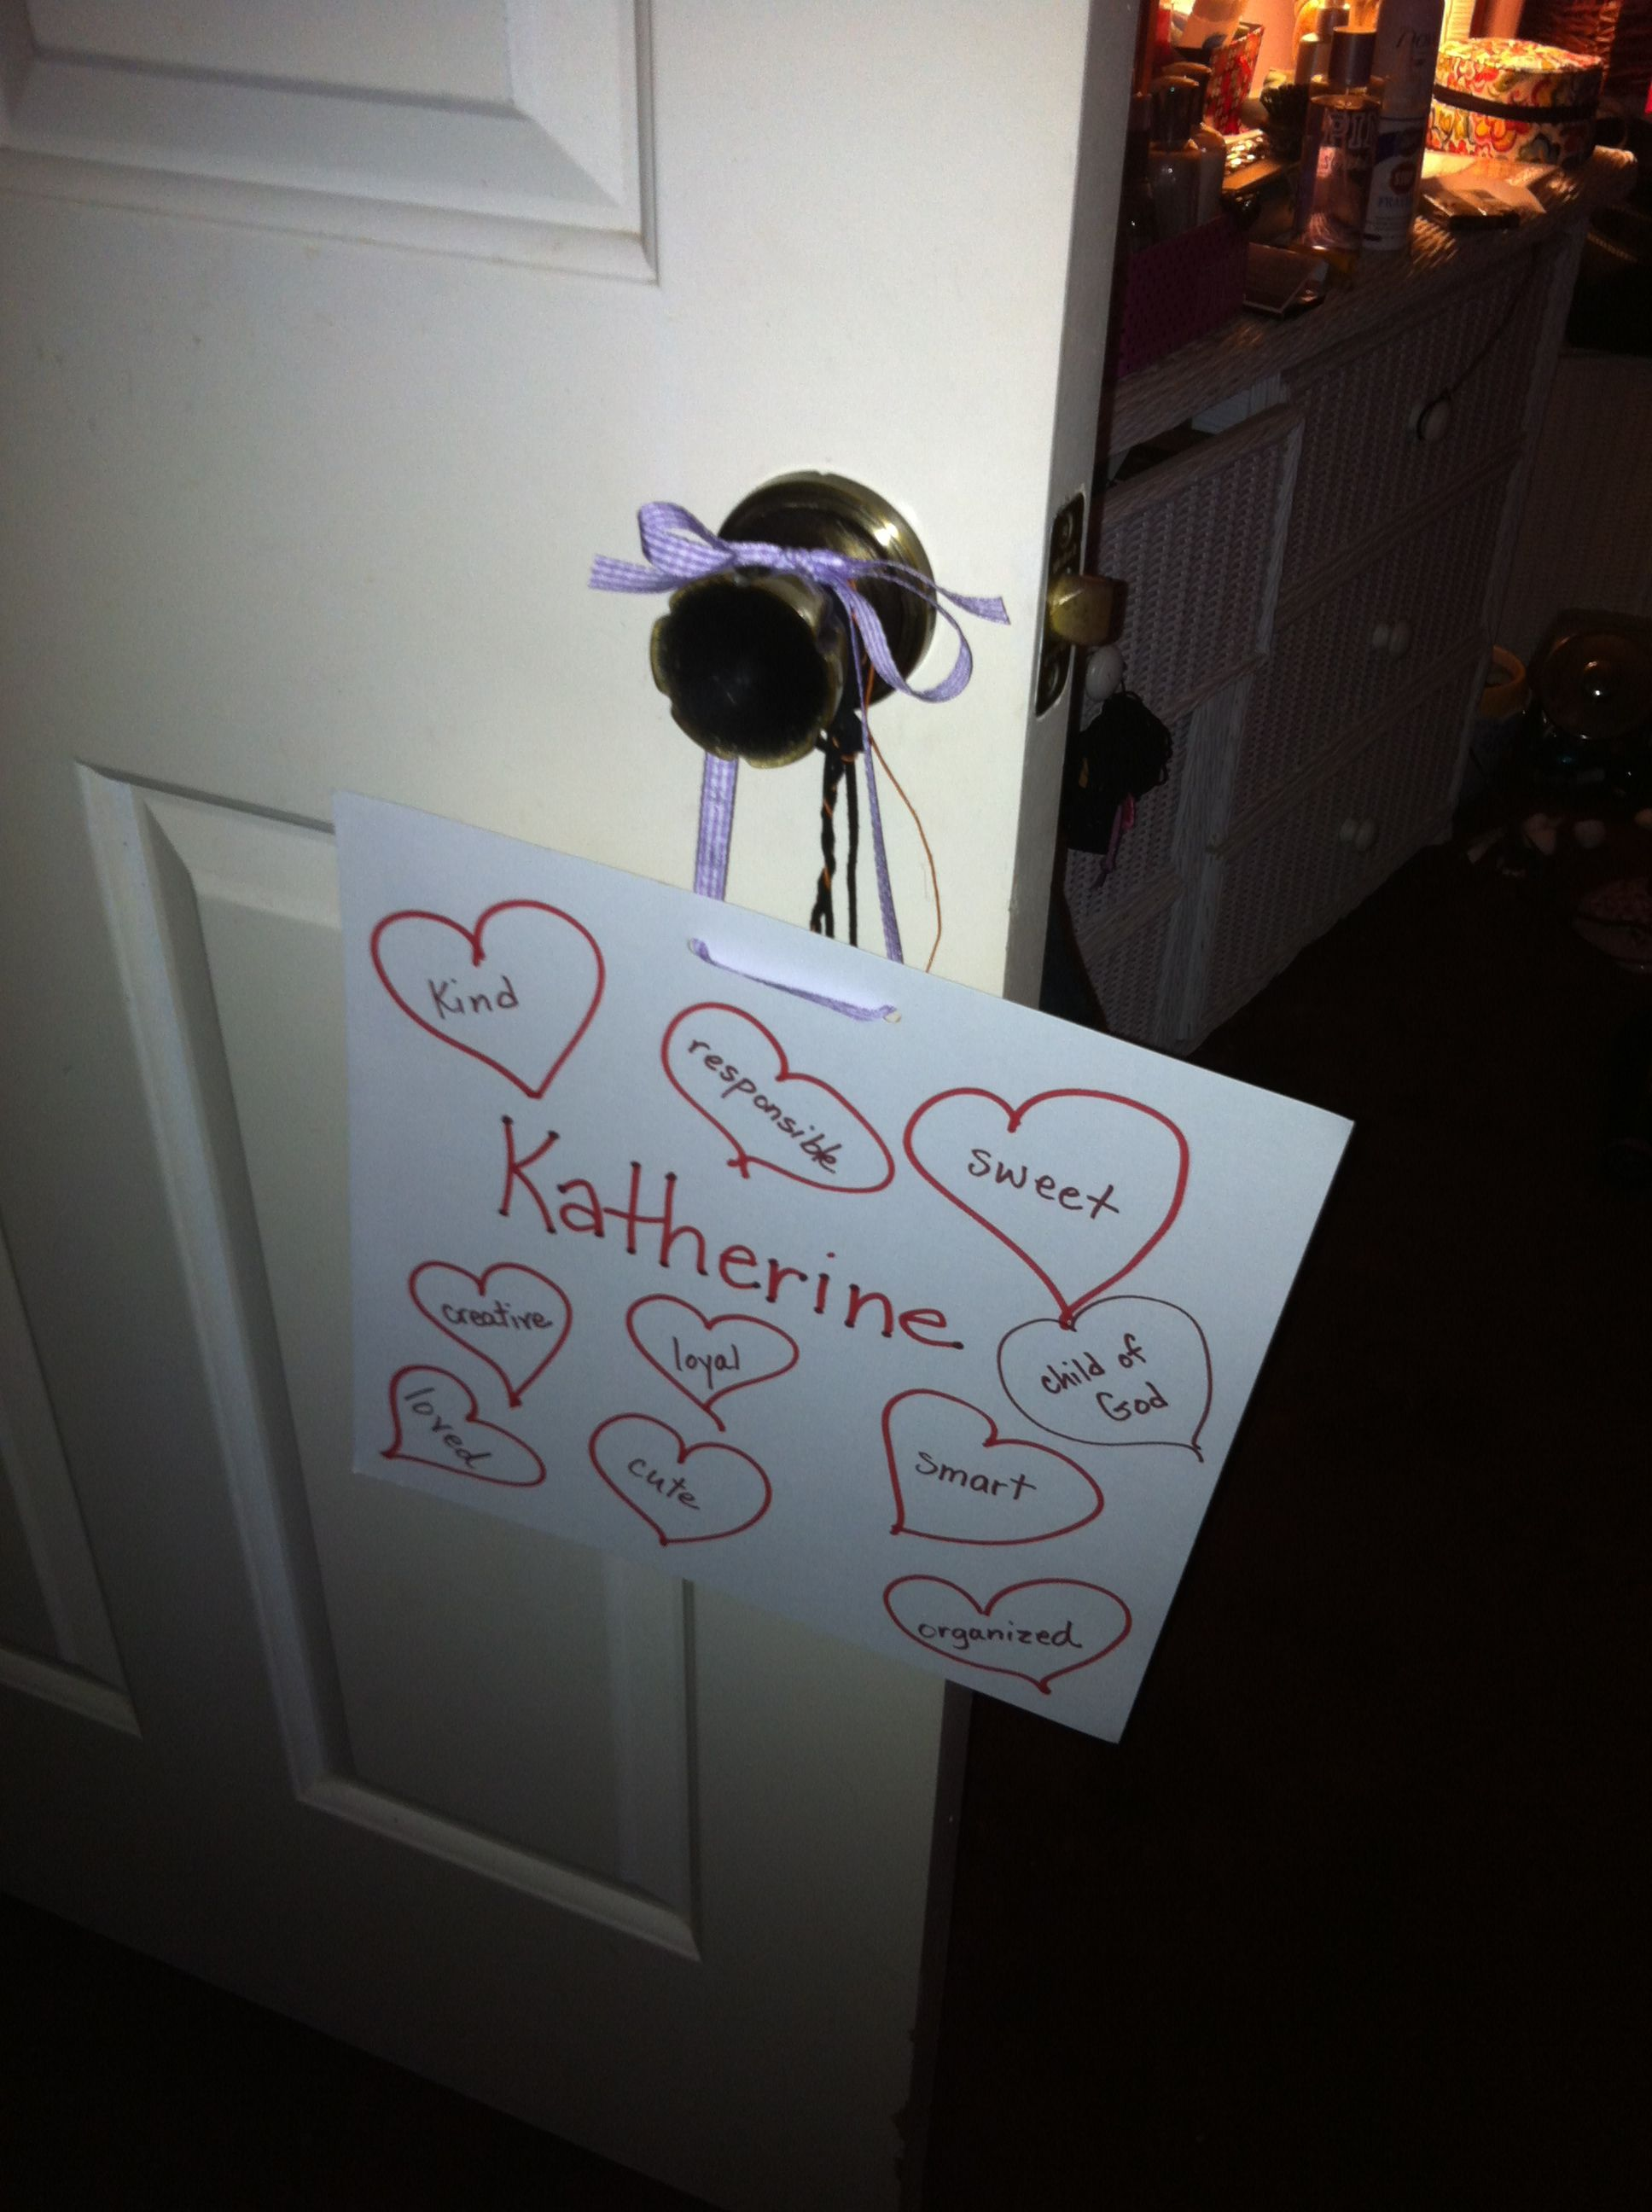 Best mom award goes to my mother! I love you! #valentine